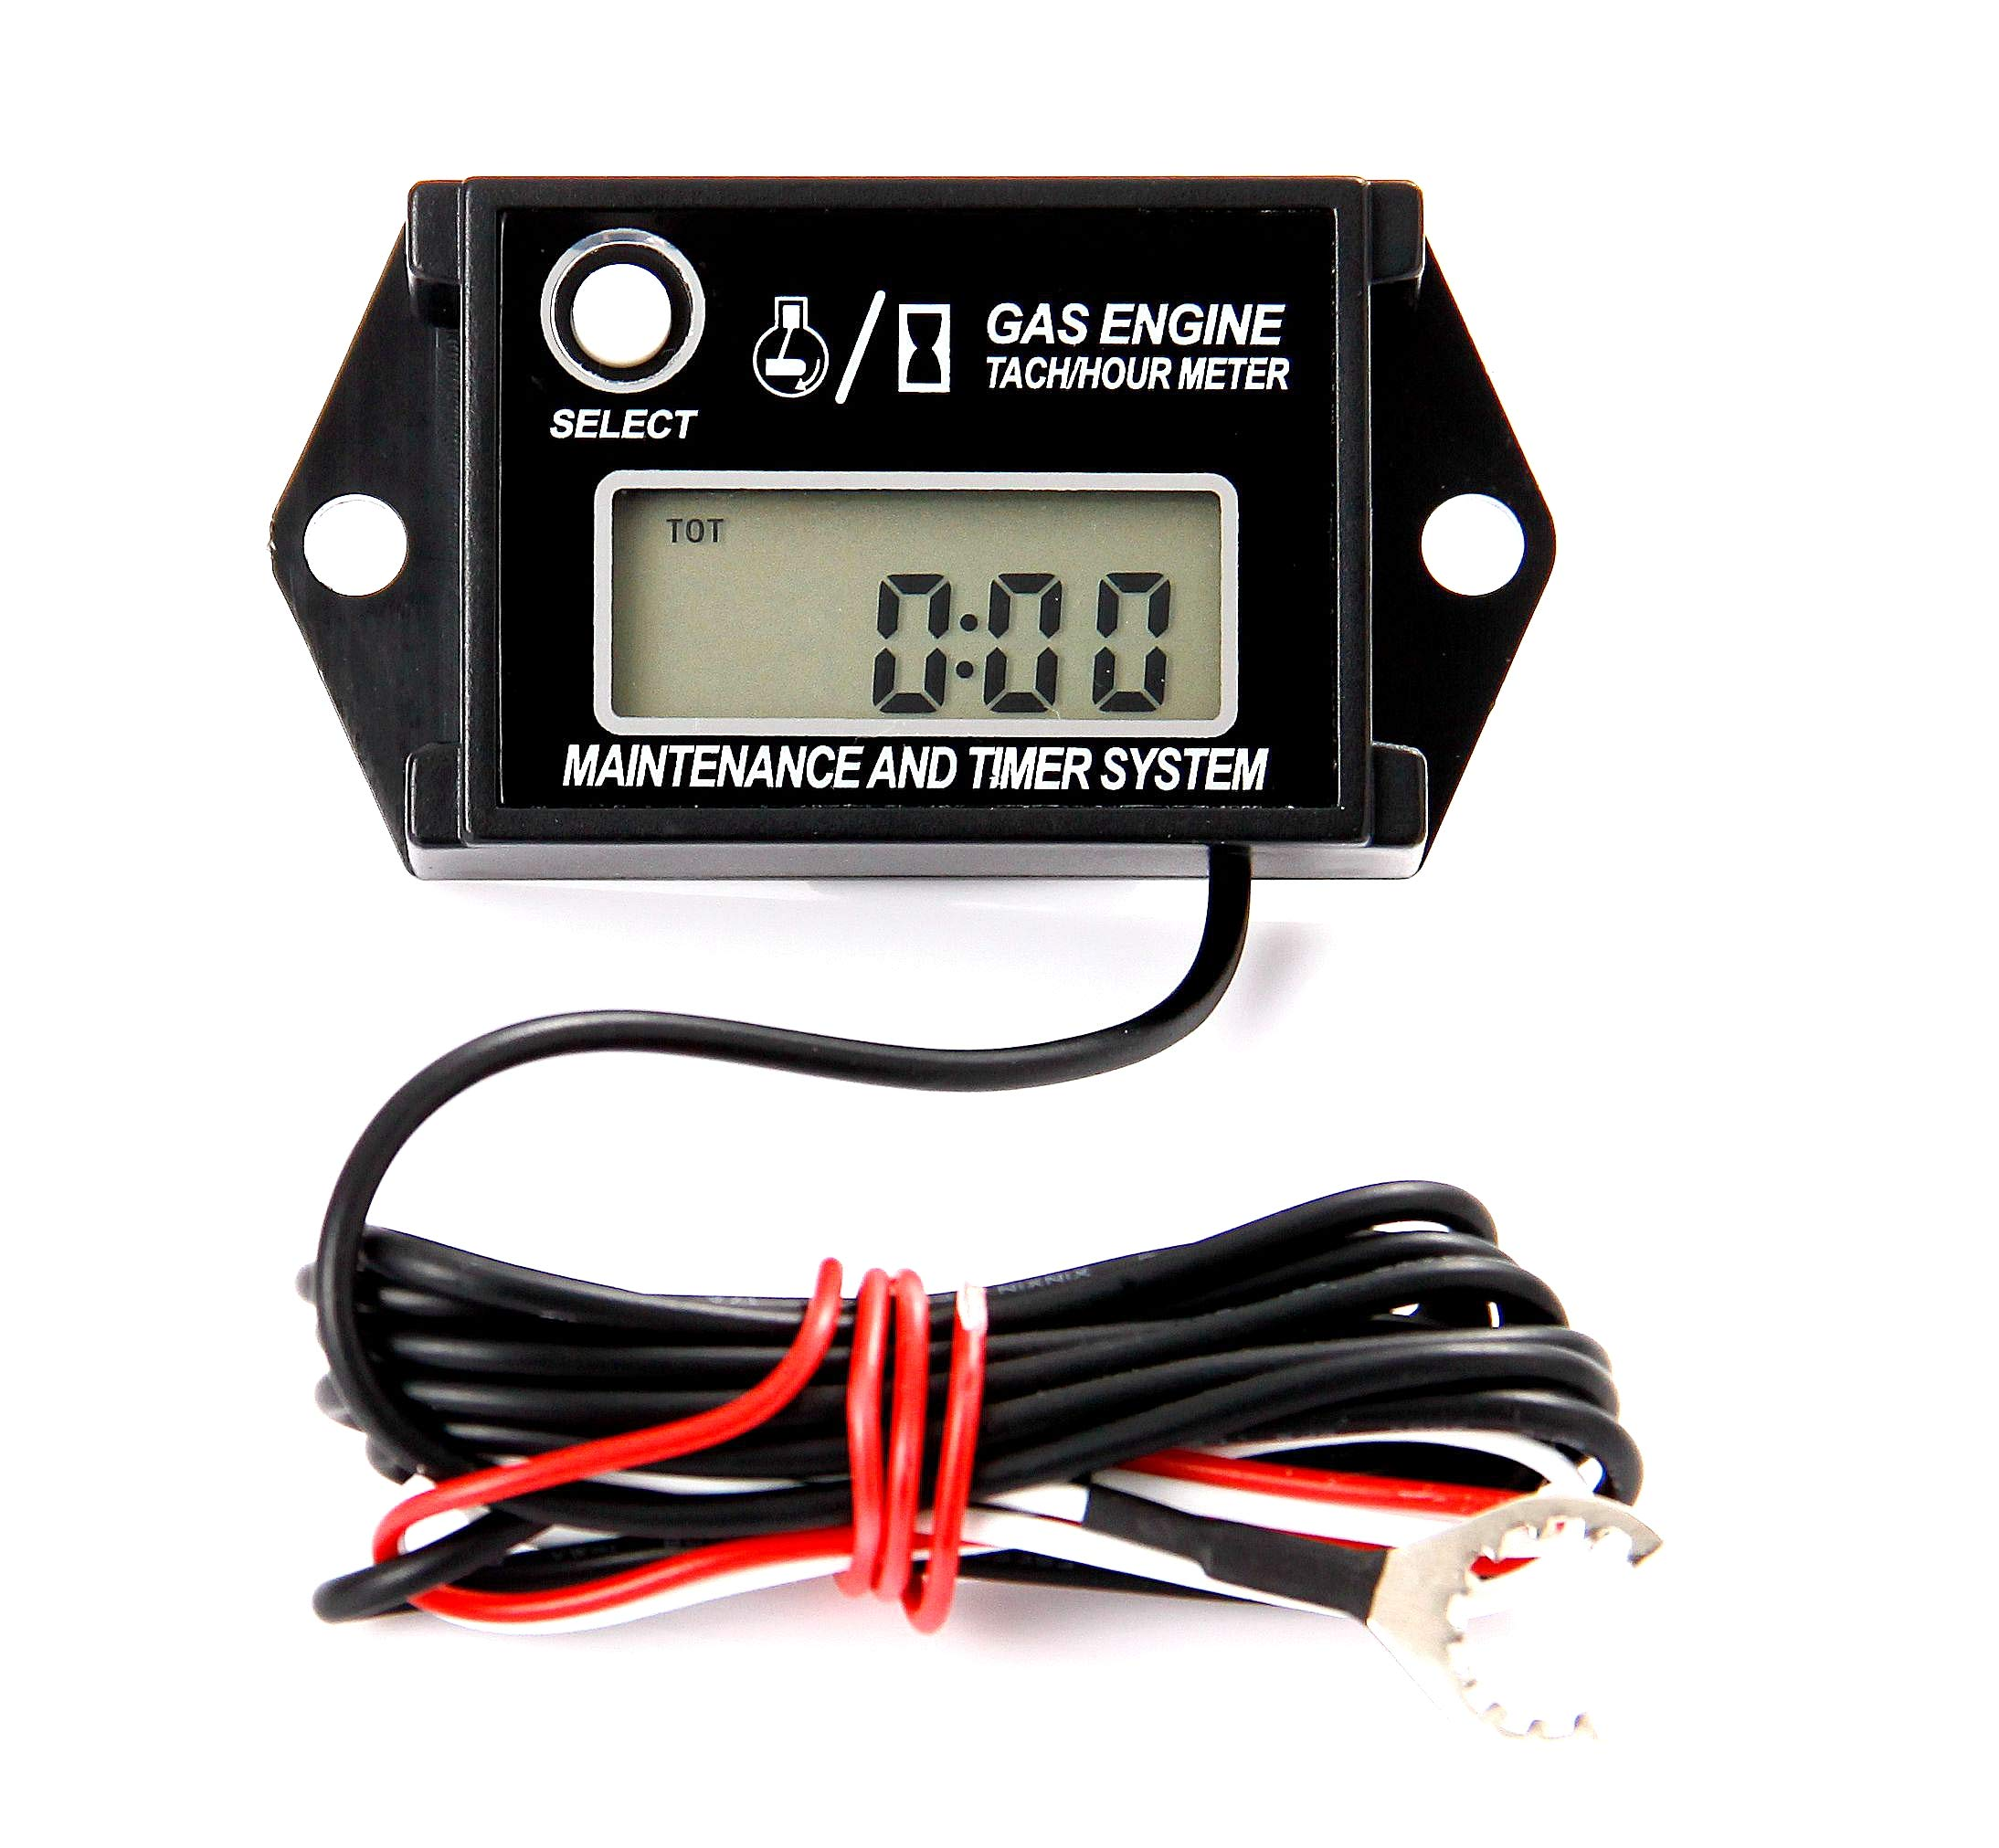 Tach Hour Meter Digital Tachometer Tach & Hour Meter re-settable for Motorcycle Boat Mower RC Toys, PWC, ATV, Motorcycles, Marine Engines, Chain Saws, Tractors, Lawnmowers by NINE-RONG